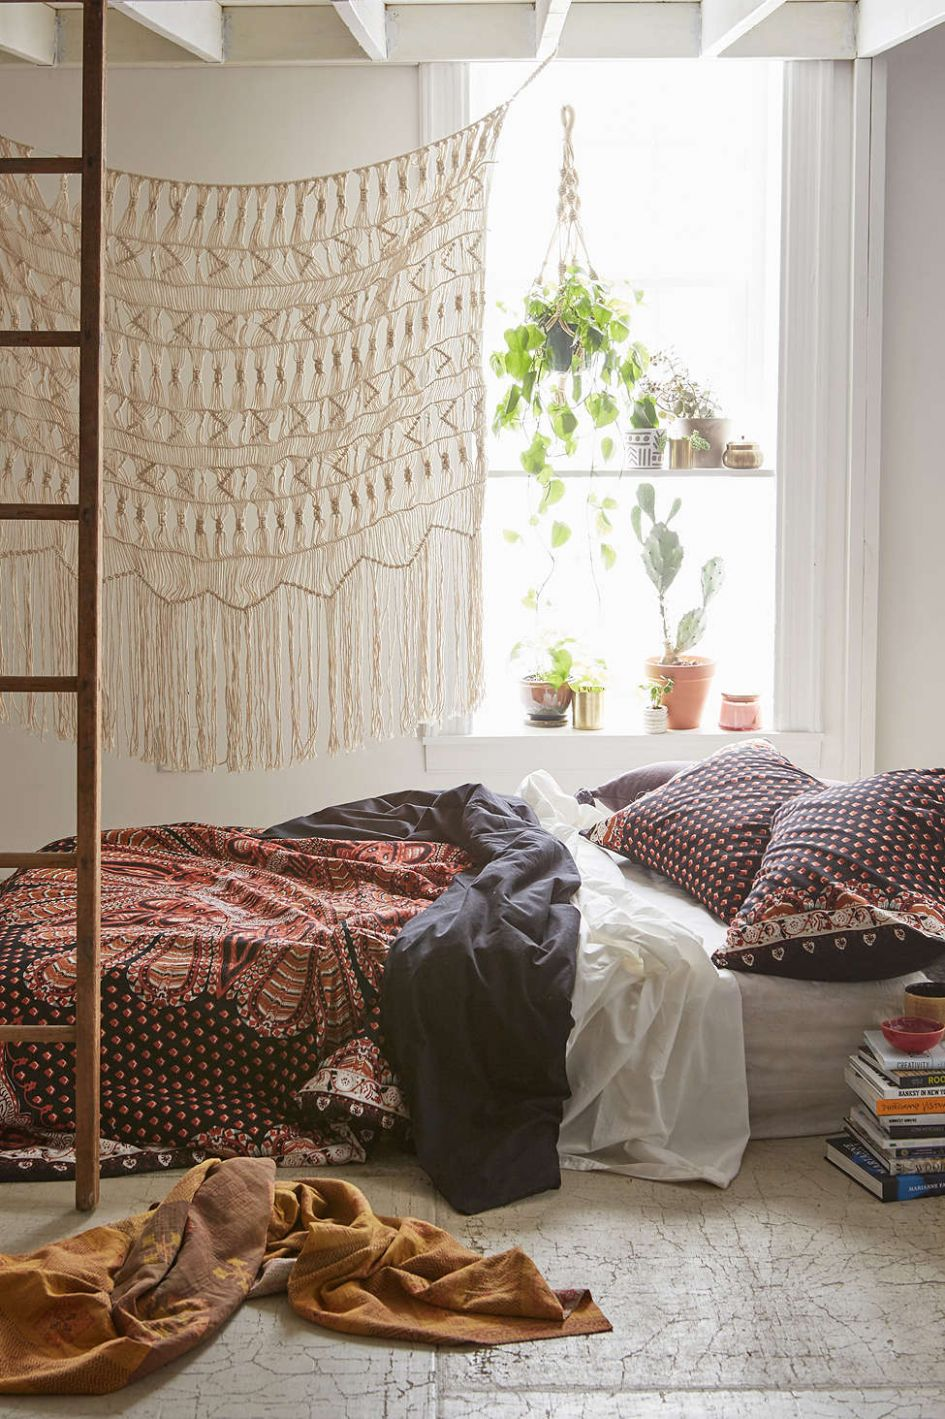 9 Bohemian Bedrooms To Fashion Your Eclectic Tastes After